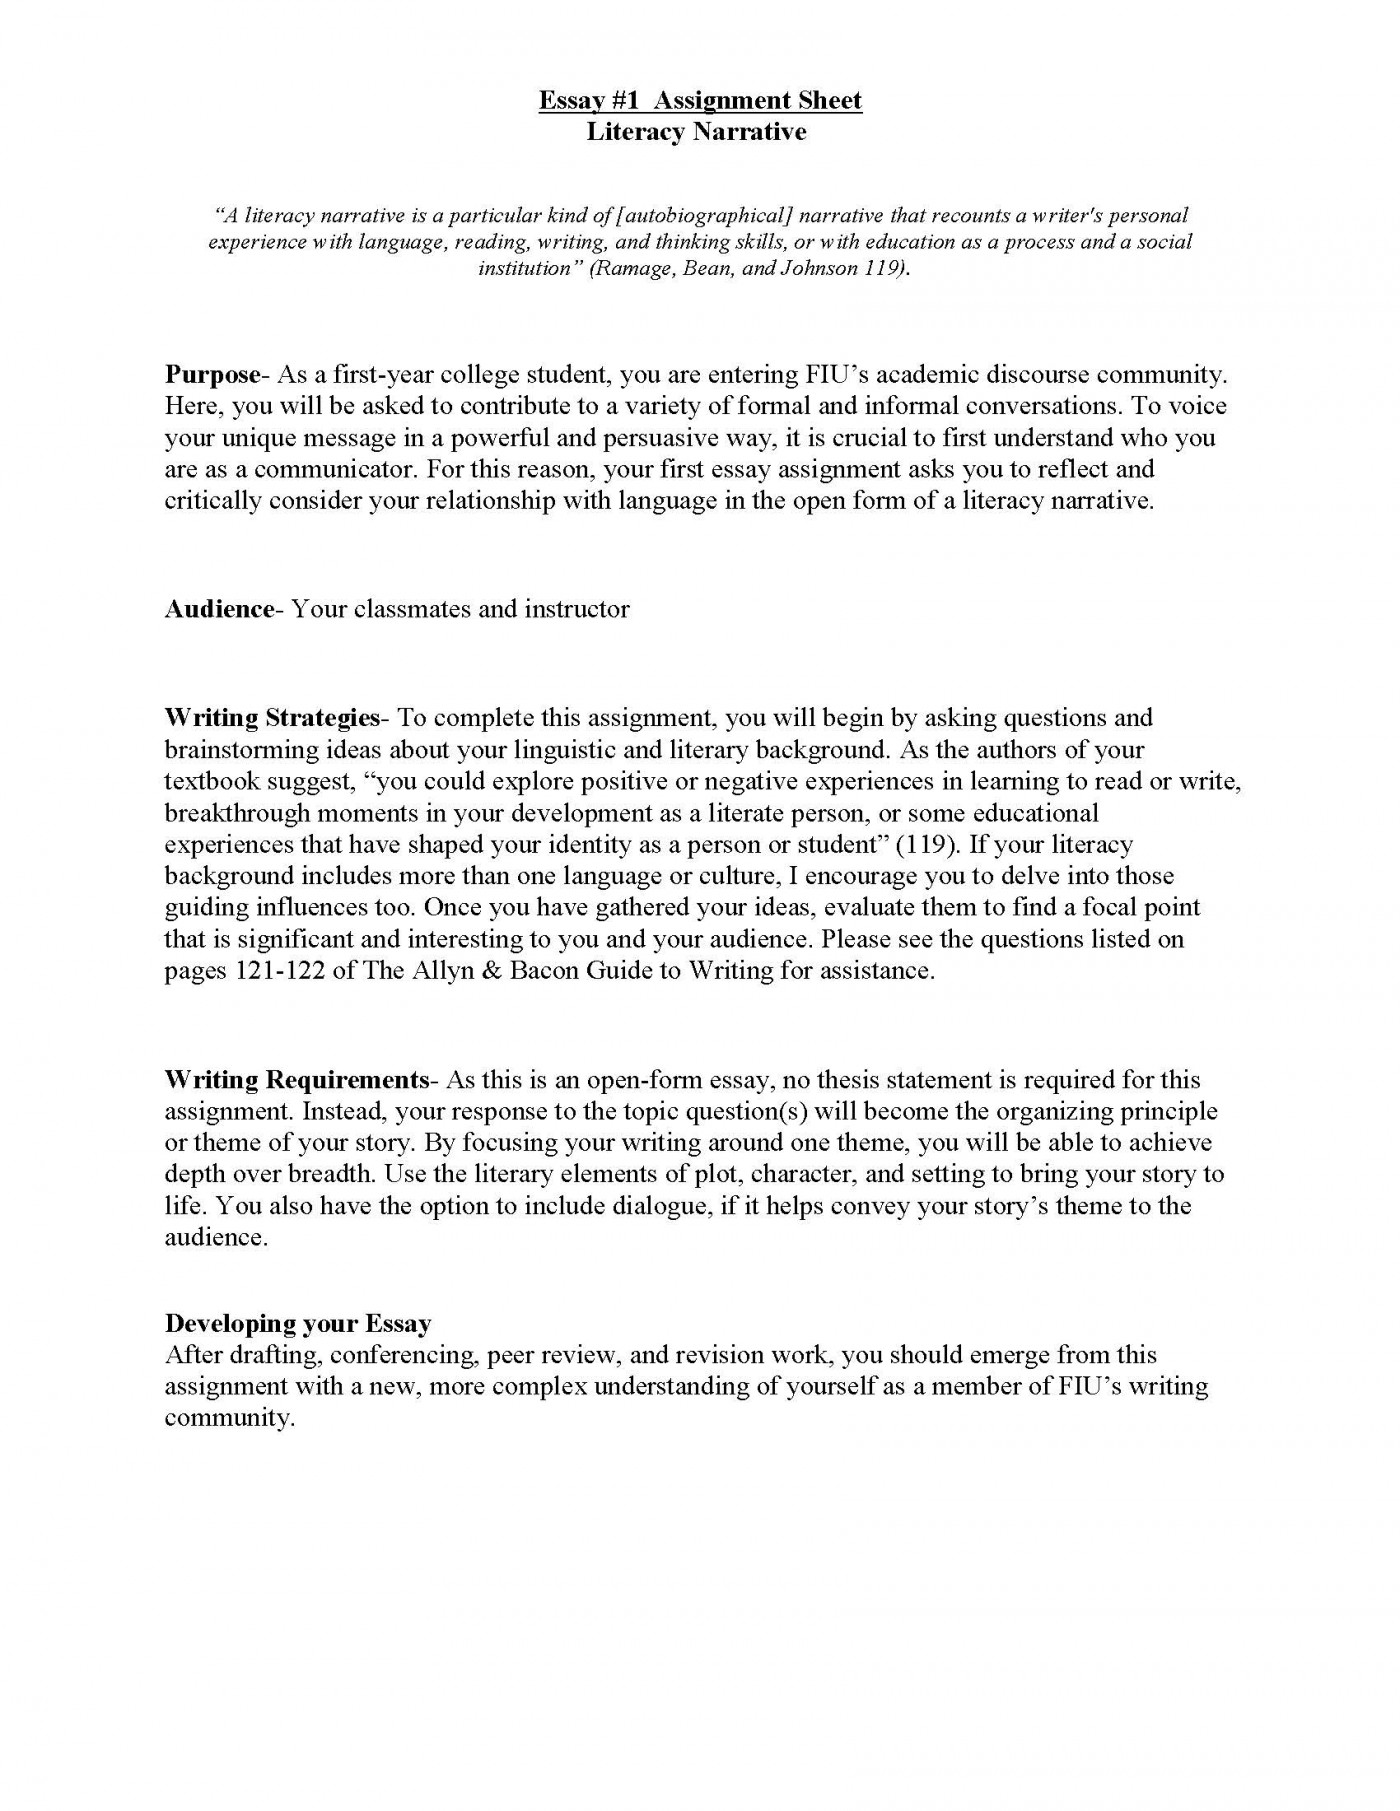 001 Literacy Narrative Unit Assignment Spring 2012 Page 1 Research Paper Personal Essay Wonderful Topics 1400